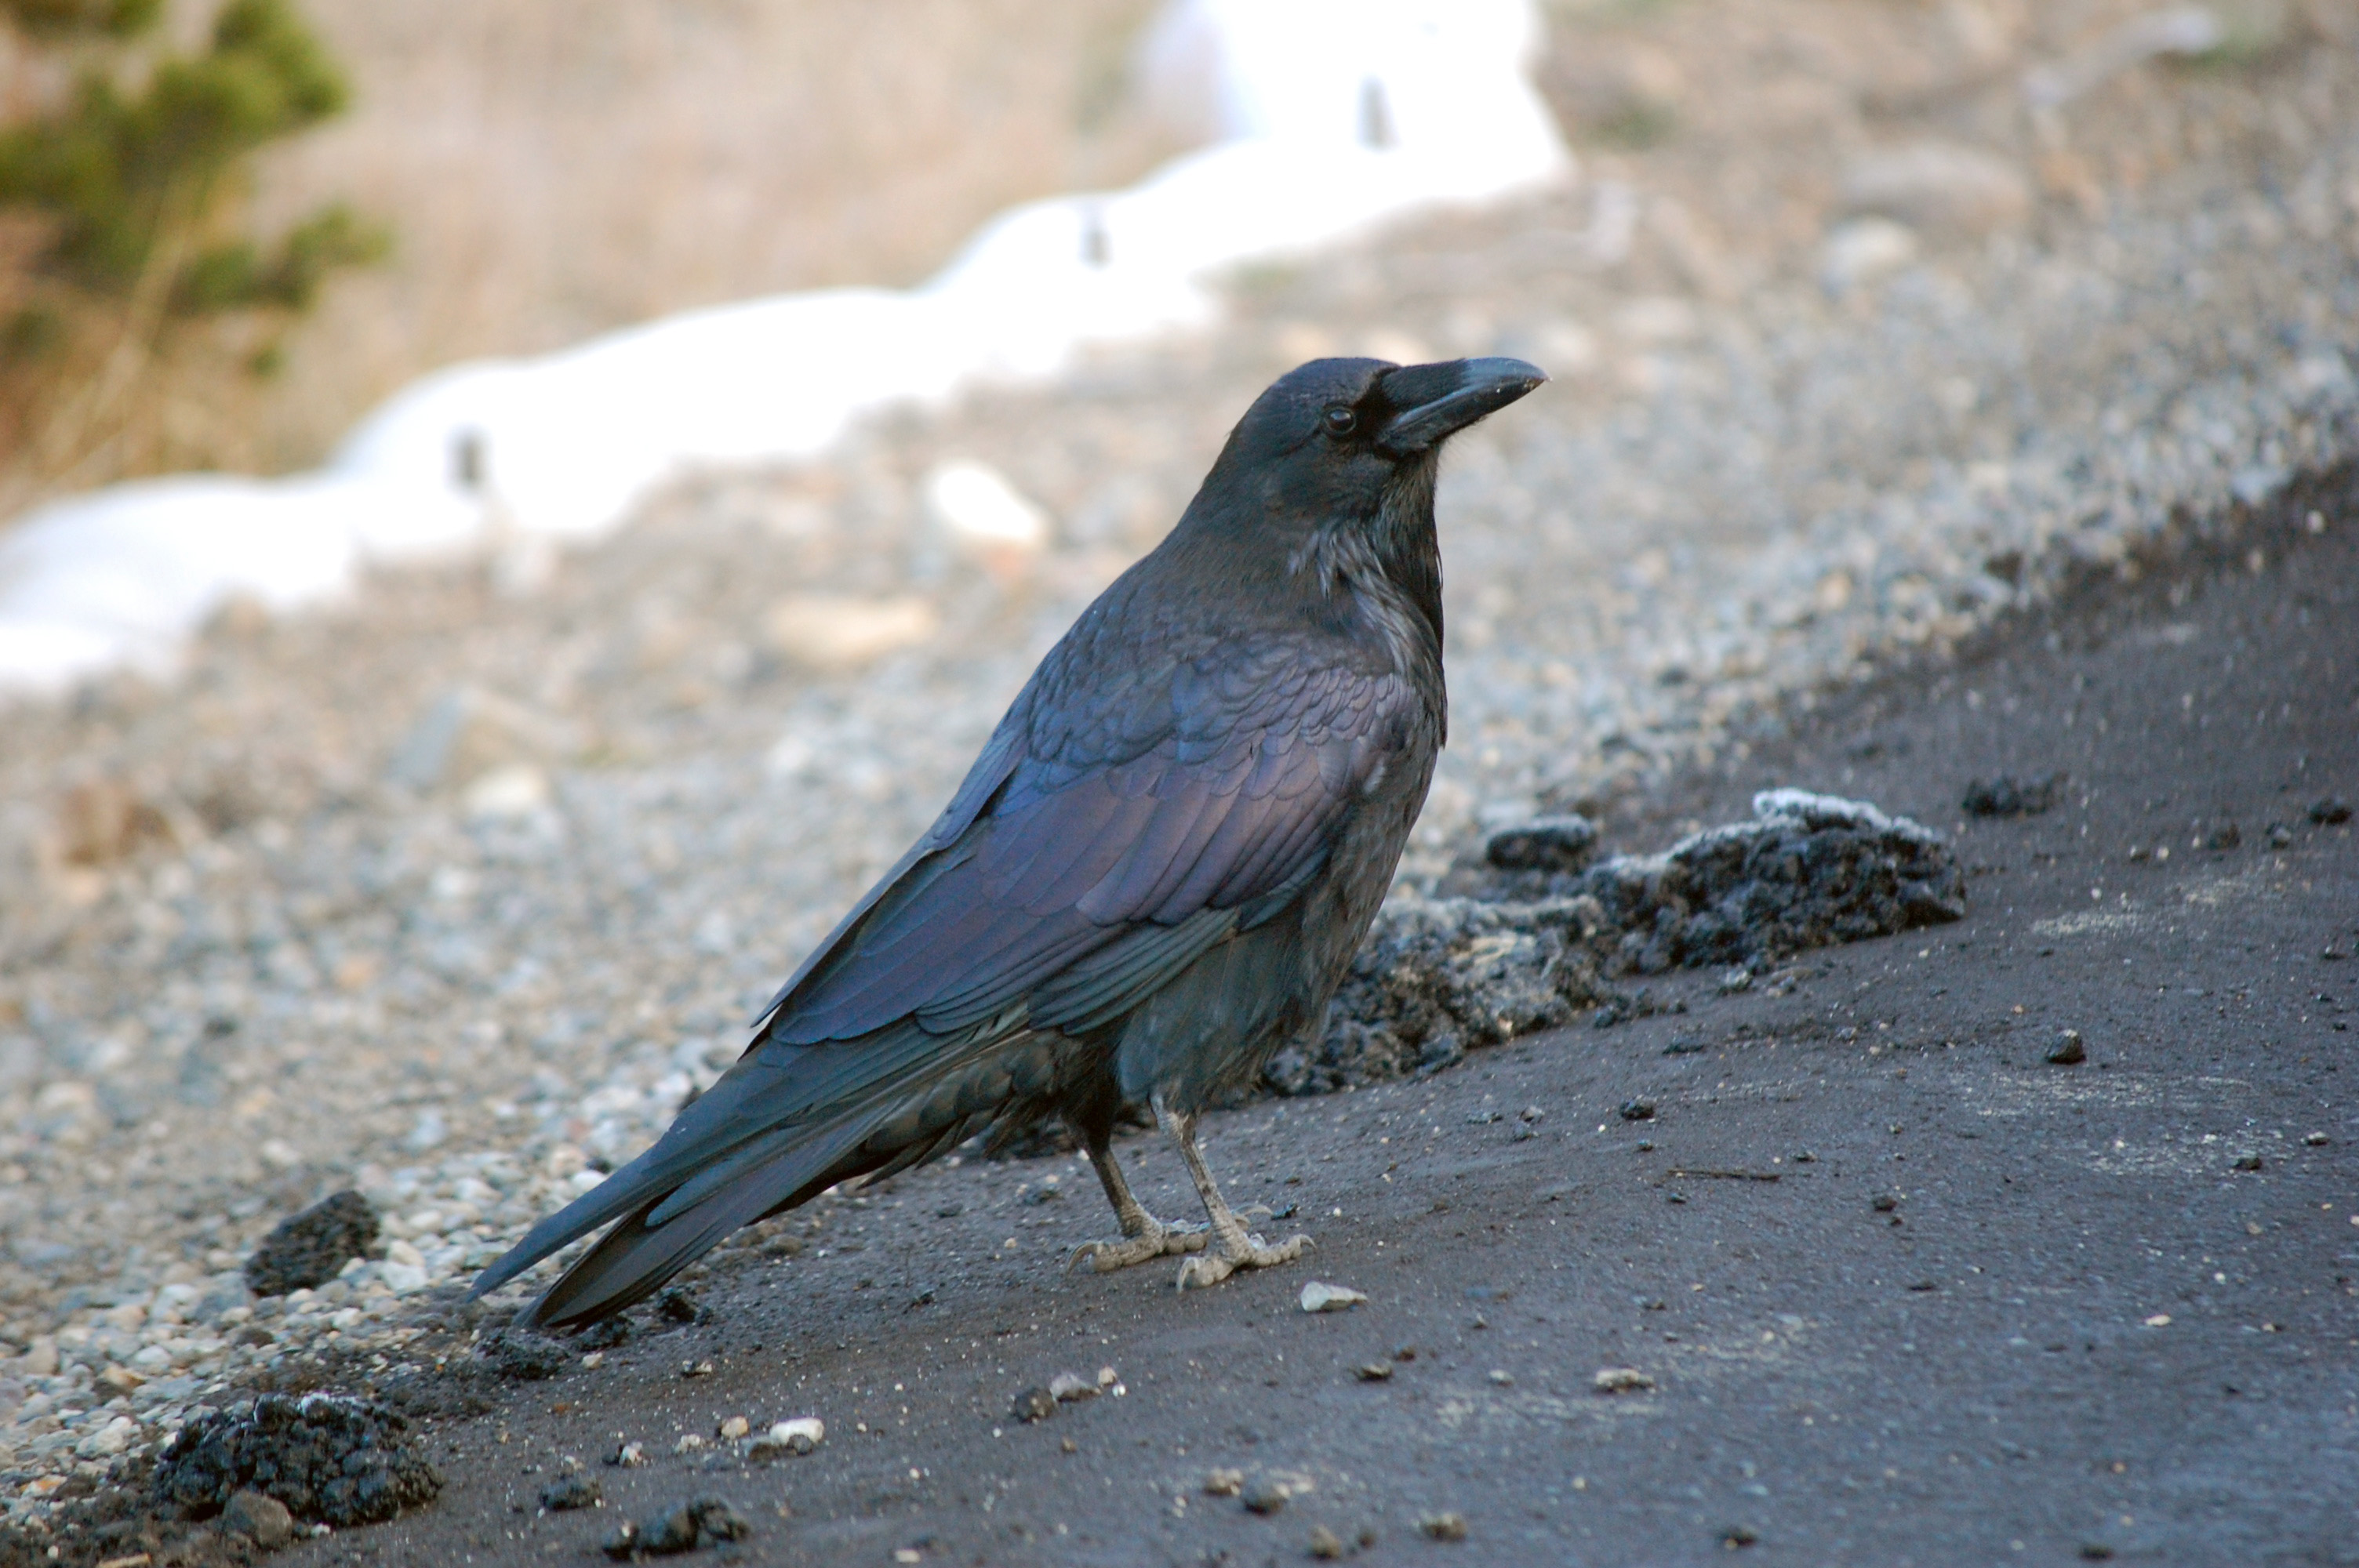 The Raven Toll Collector